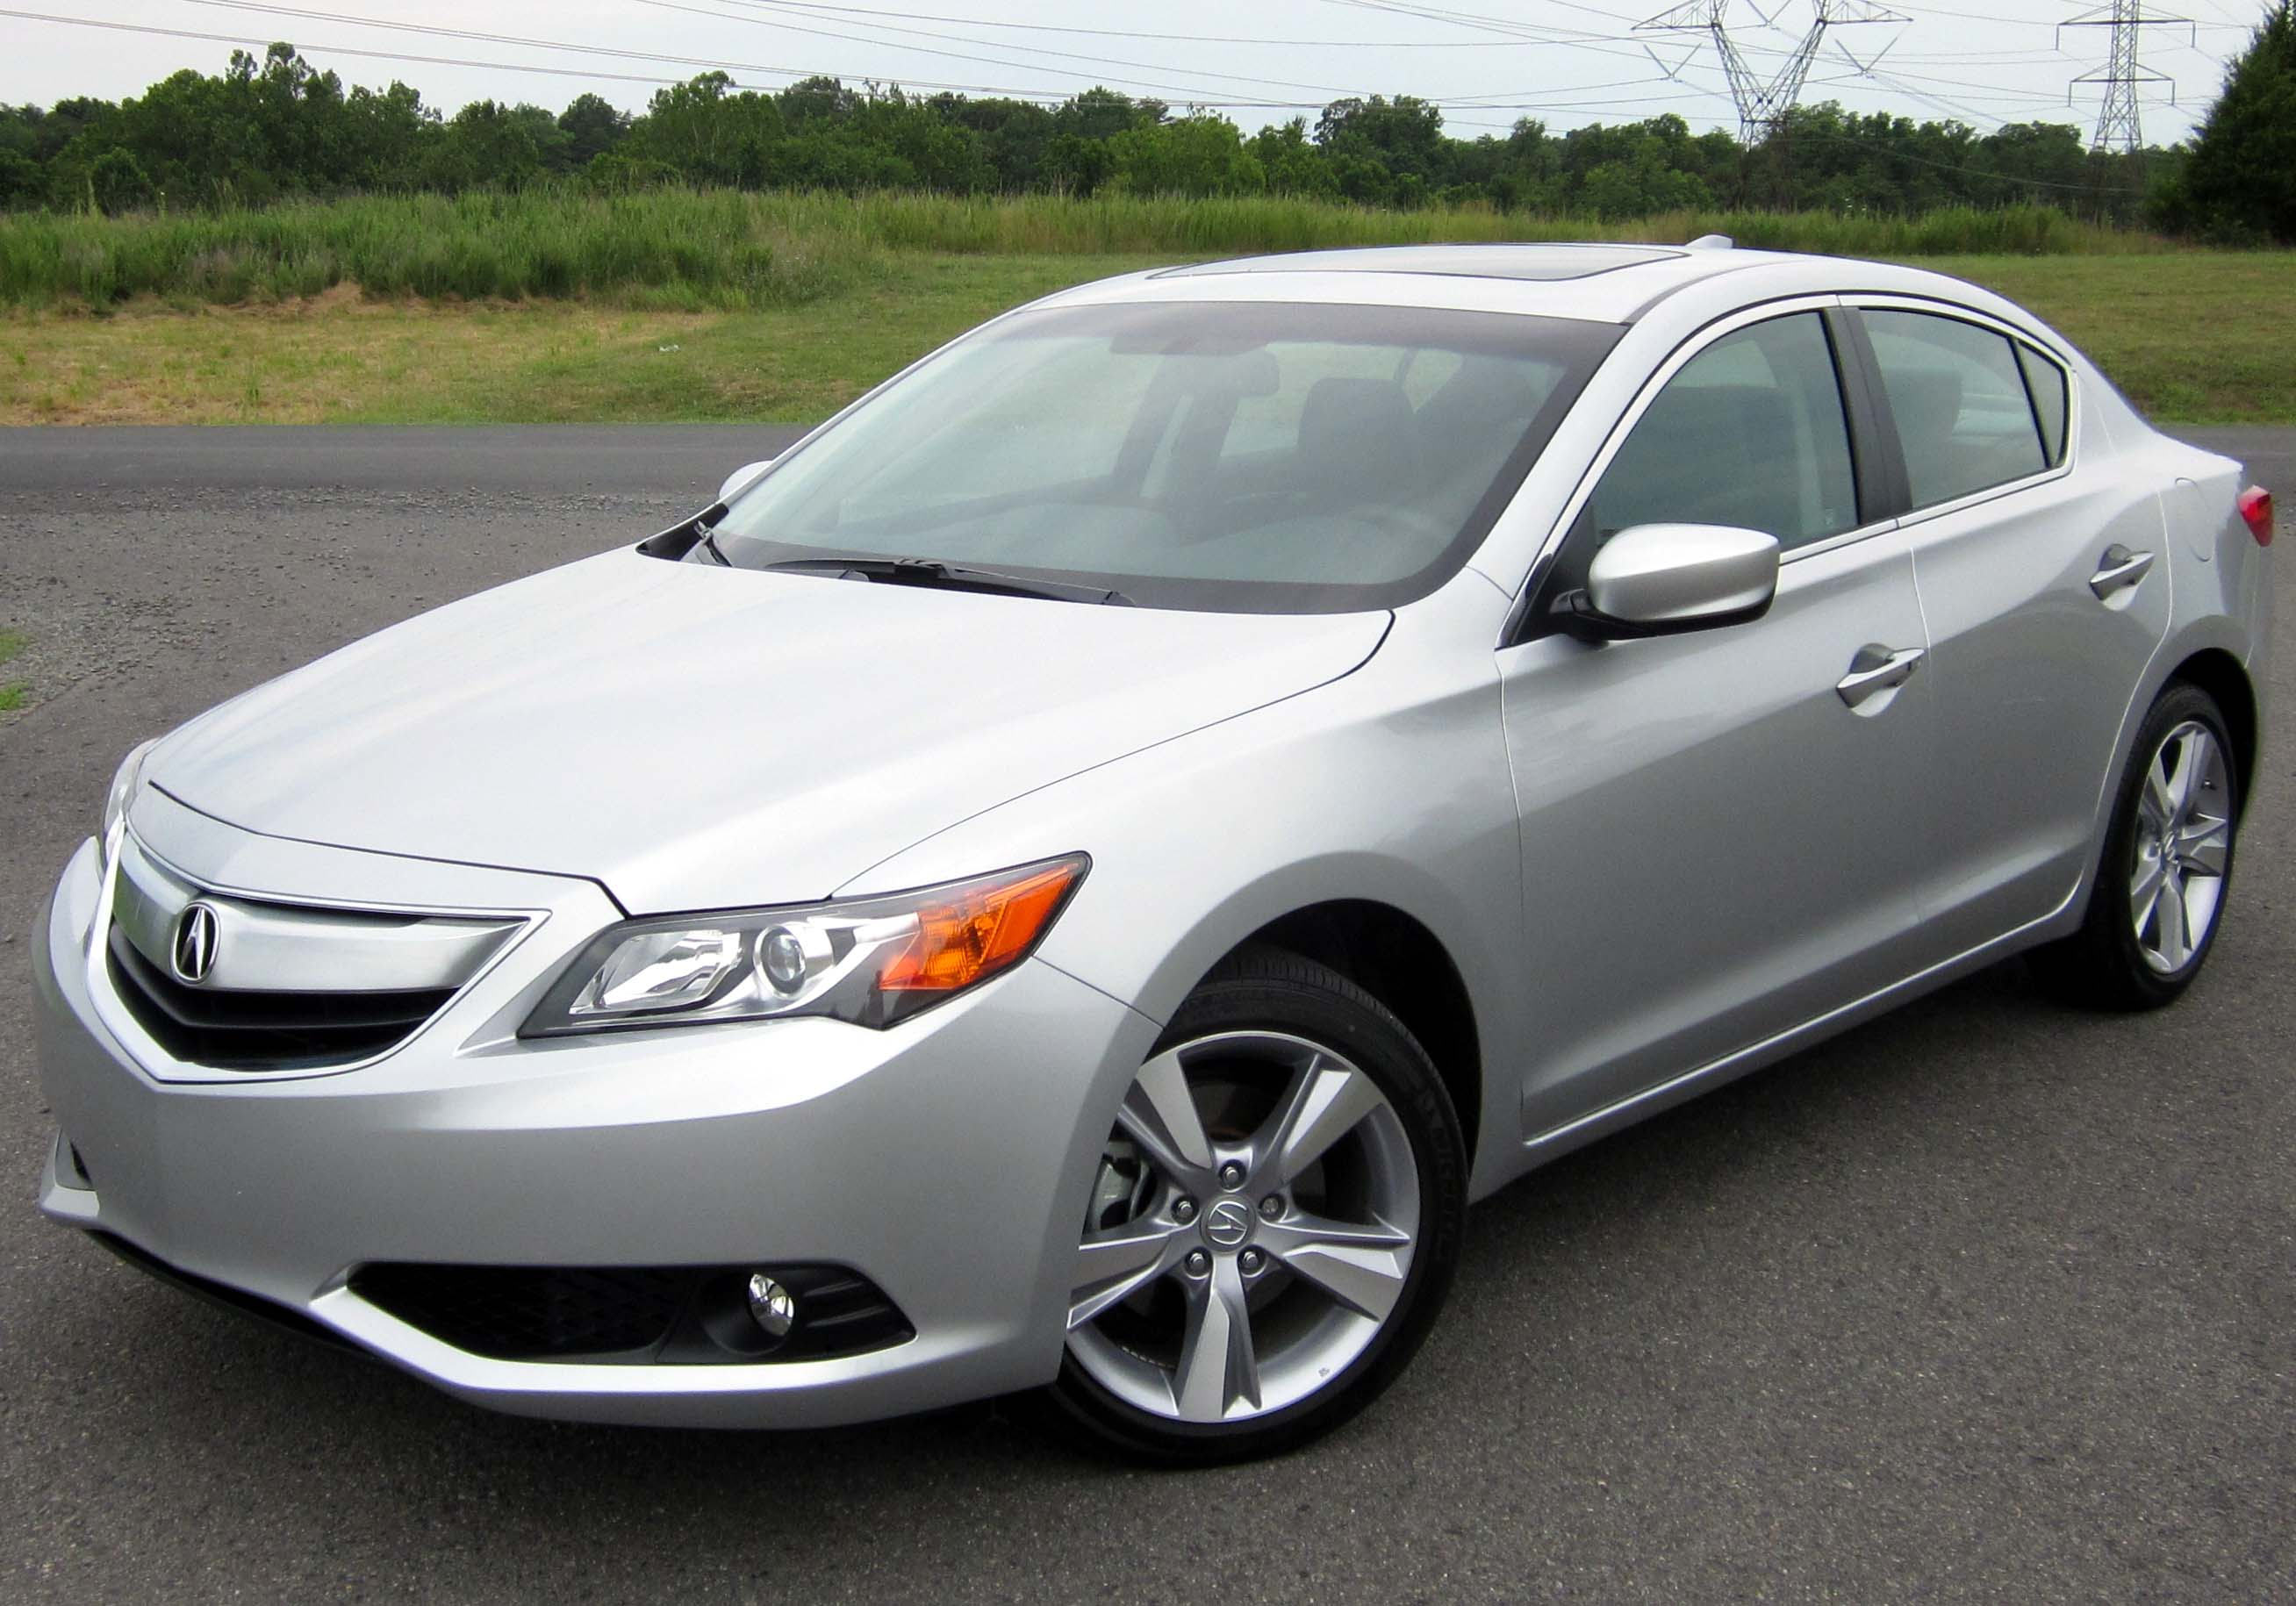 ... Words together with 2013 Acura ILX Hybrid. on acura ilx 2014 manual